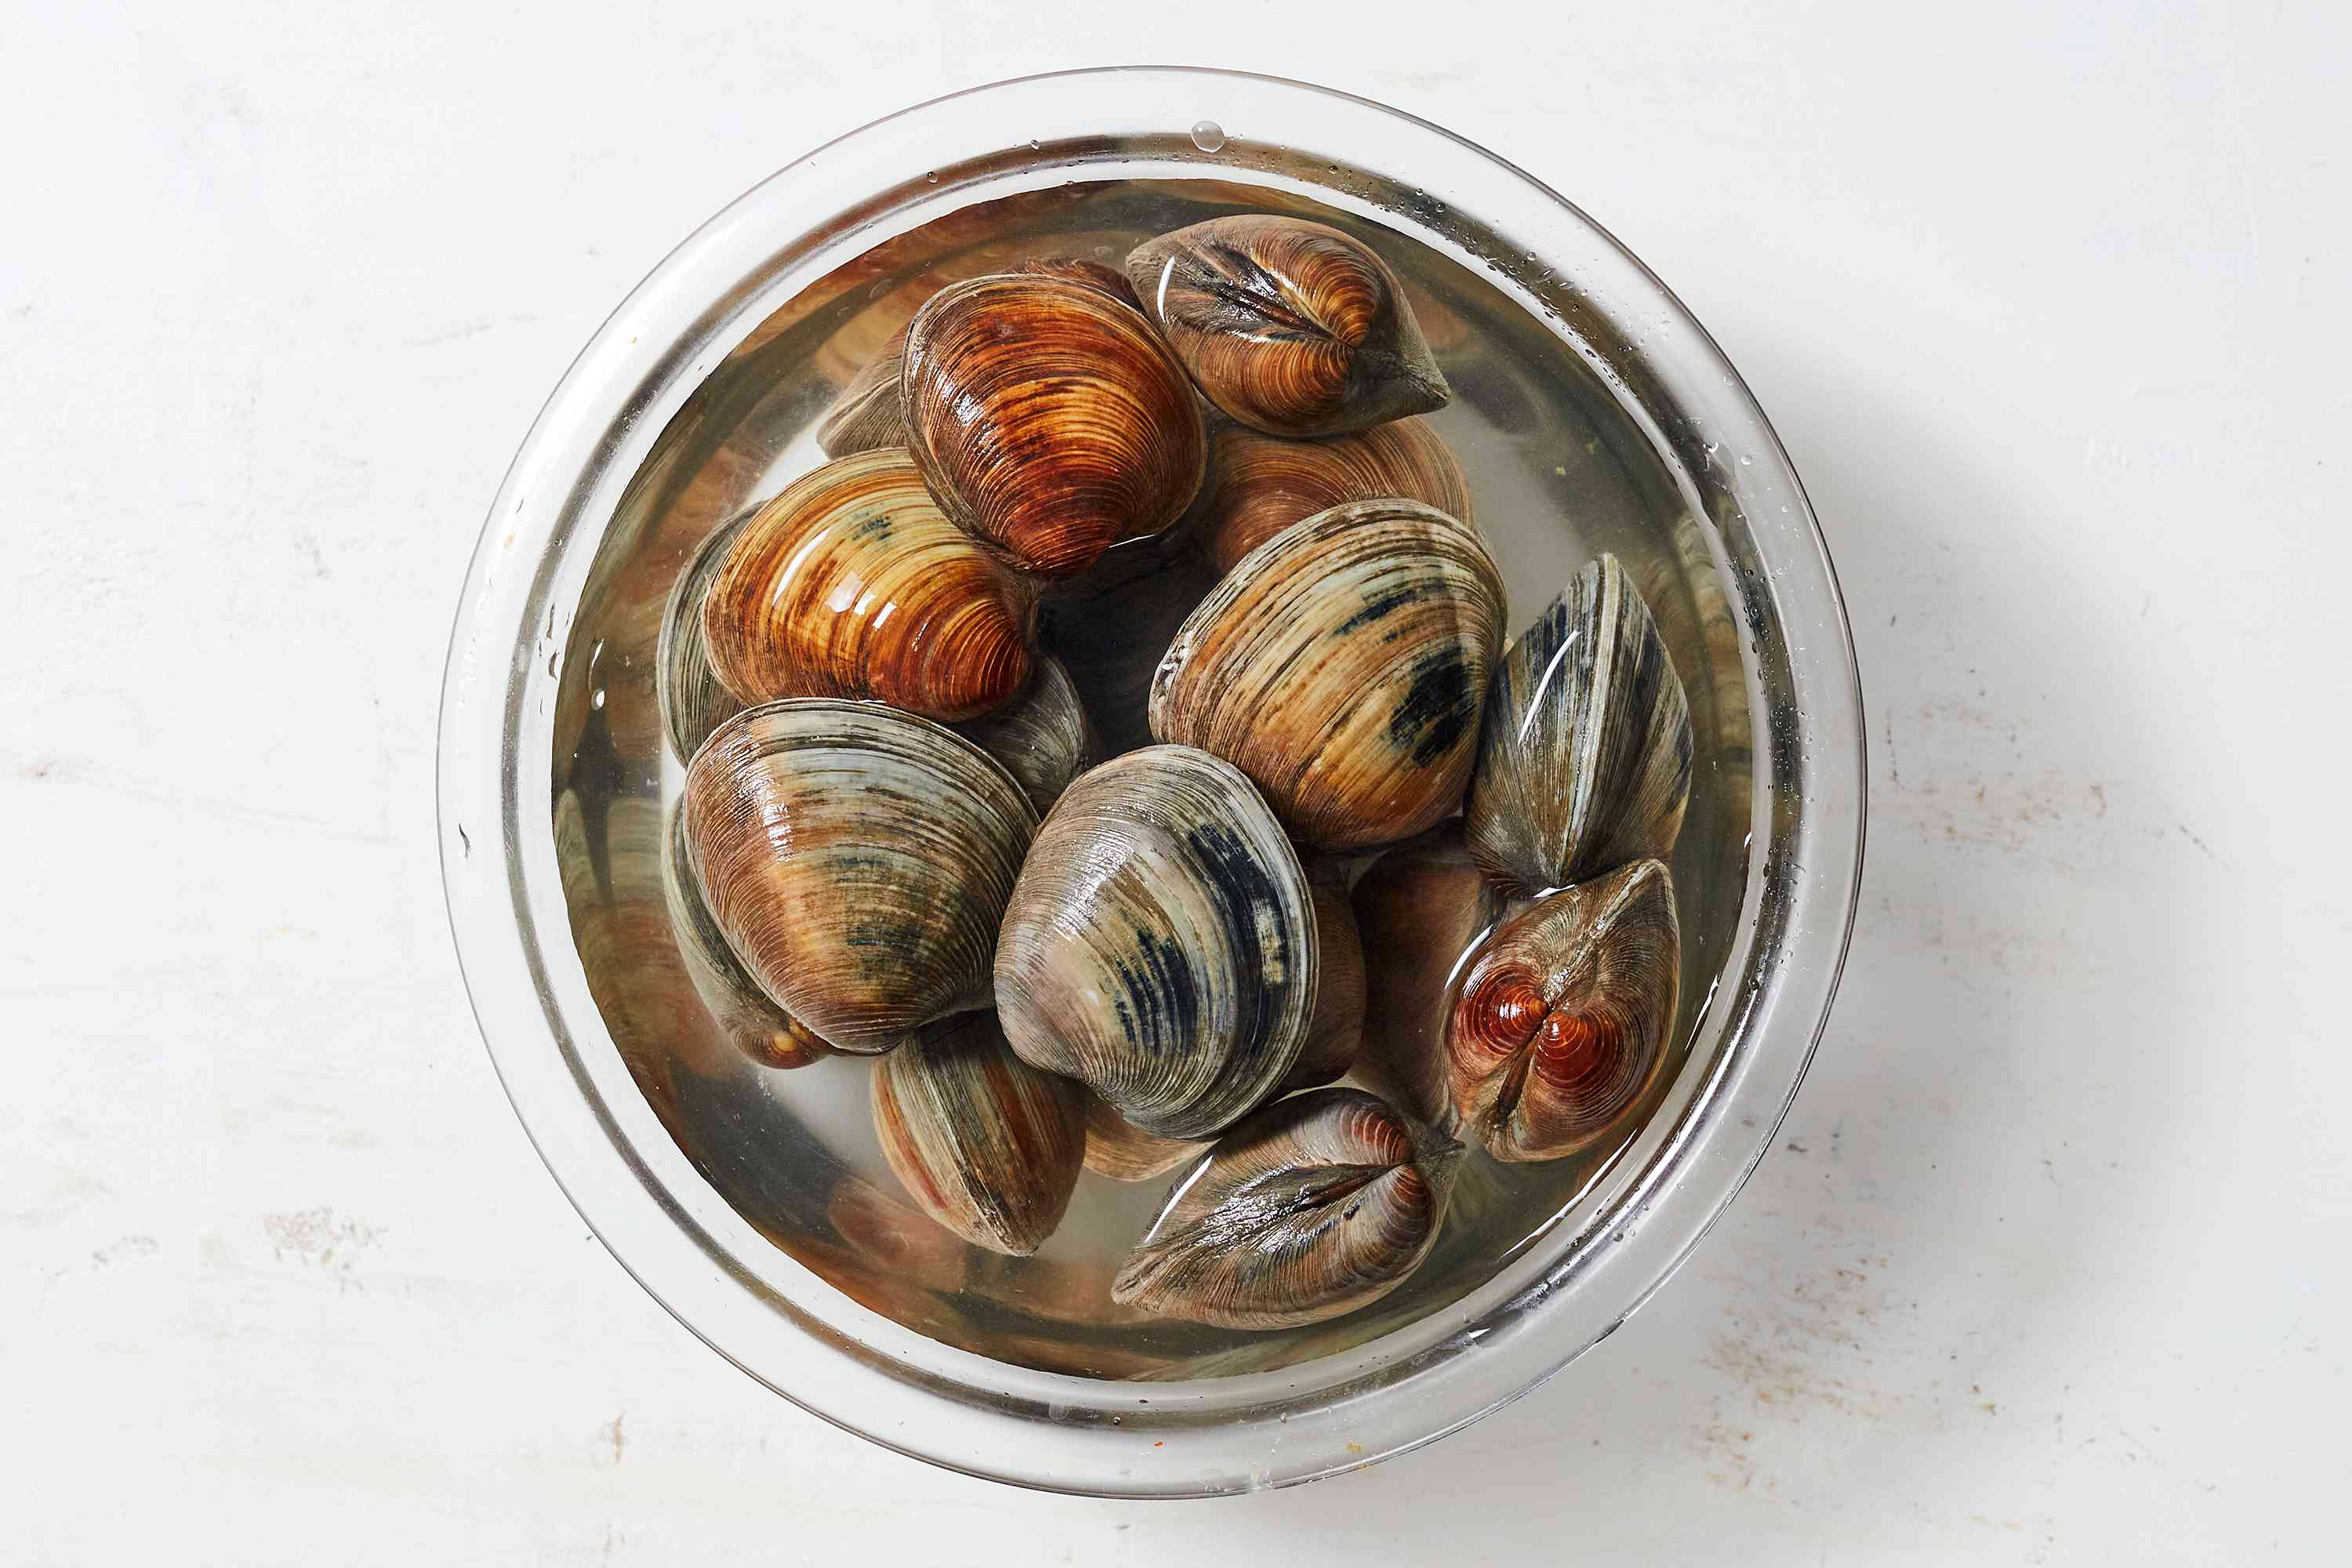 Soak the clams in a bowl of cold water